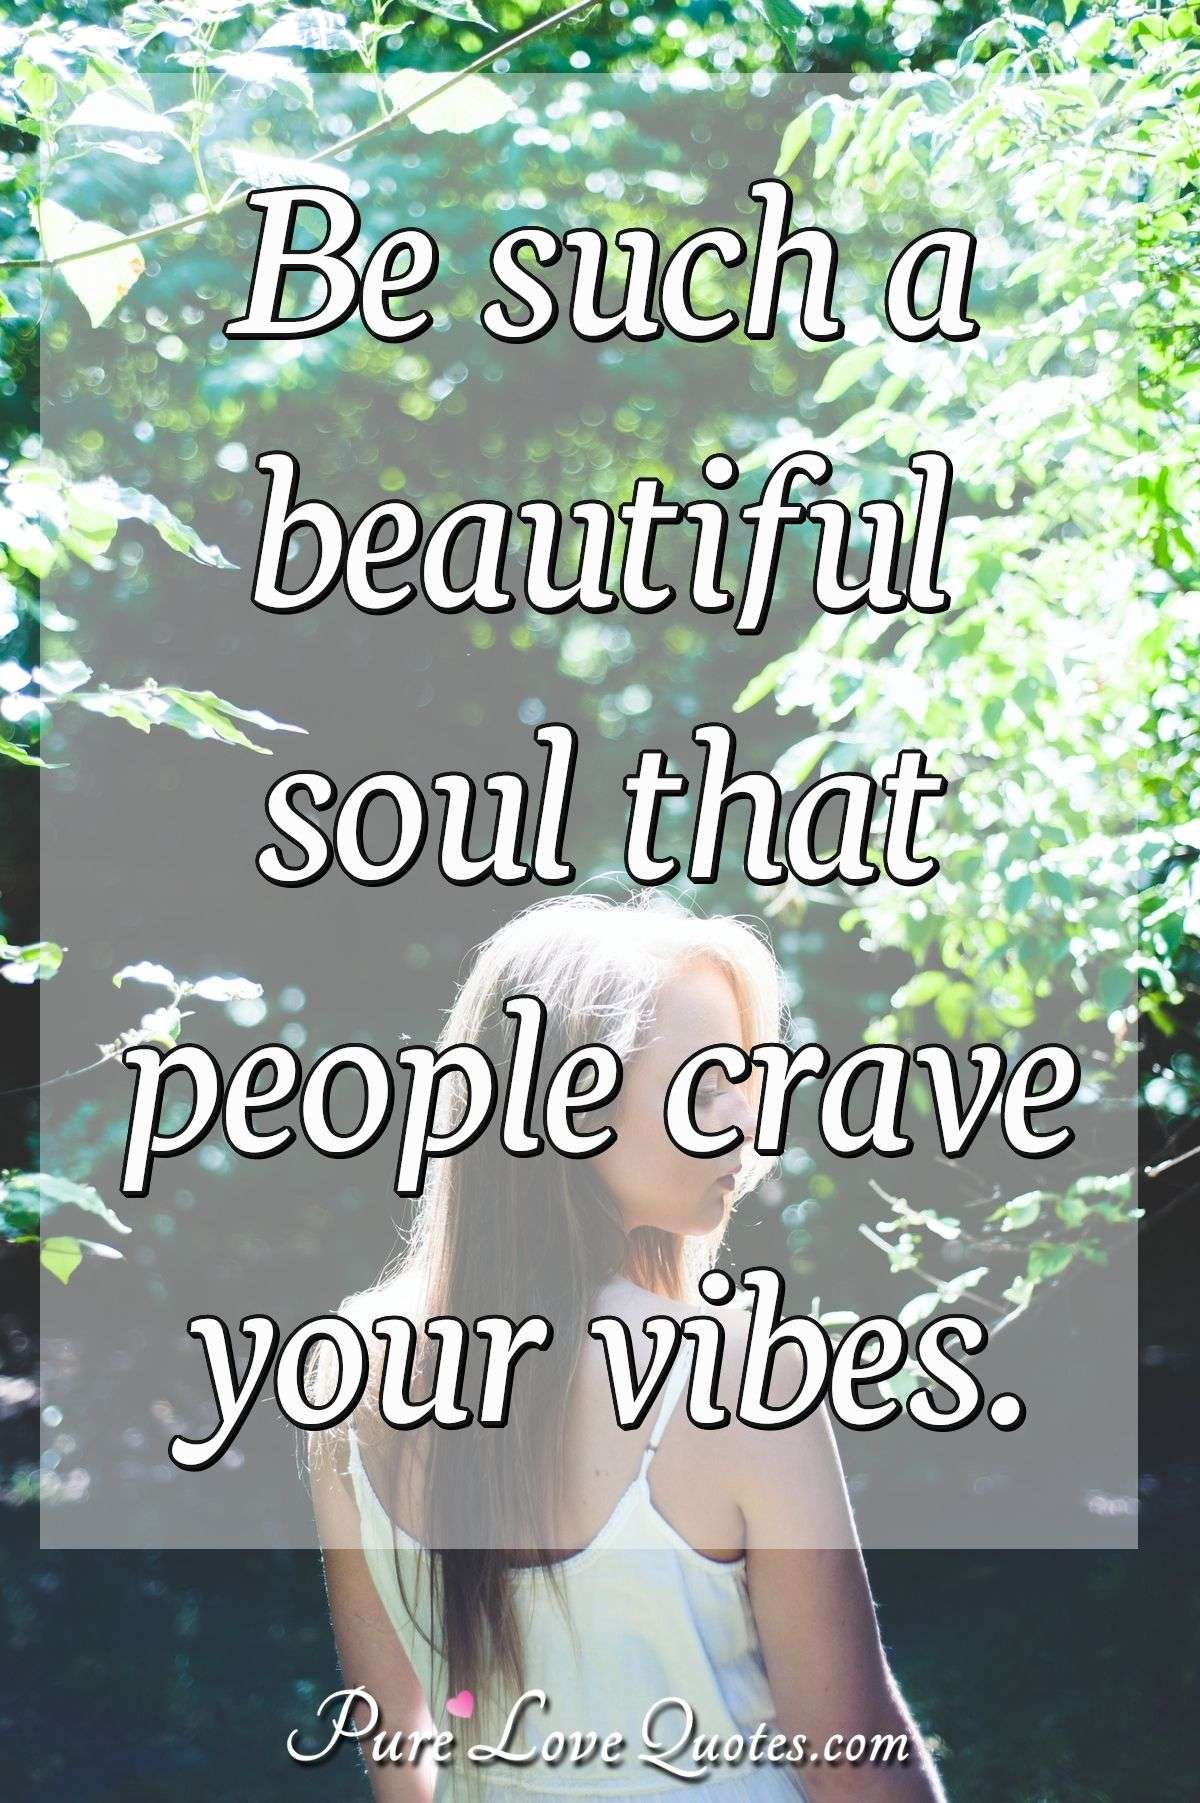 Be such a beautiful soul that people crave your vibes ...